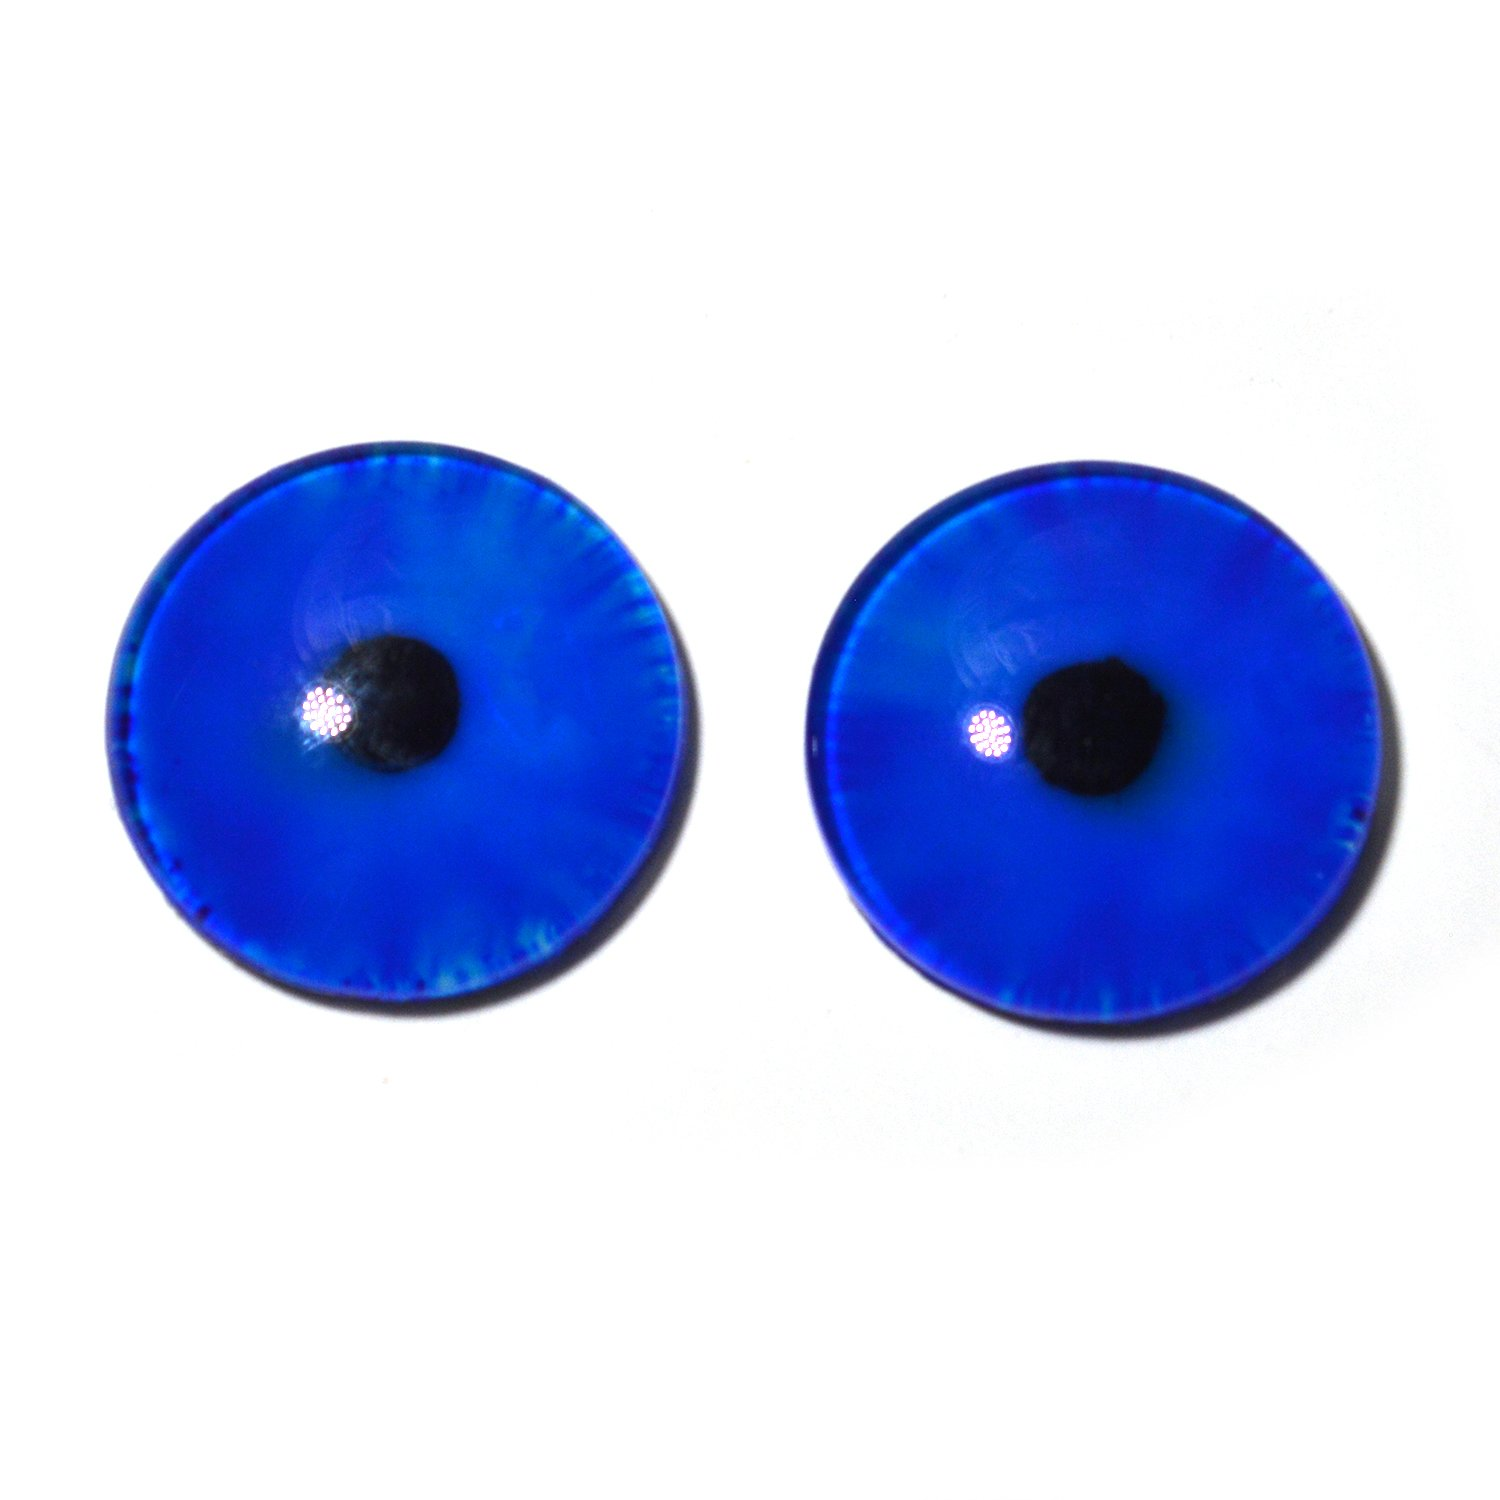 25mm Dark Blue Glow in the Dark Eyes - 1 Inch Glass Eyes Pair - Peel and Stick Adhesive Backing - For Art Dolls, Jewelry Making, Taxidermy, Scrapbooking, and More by Megan's Beaded Designs